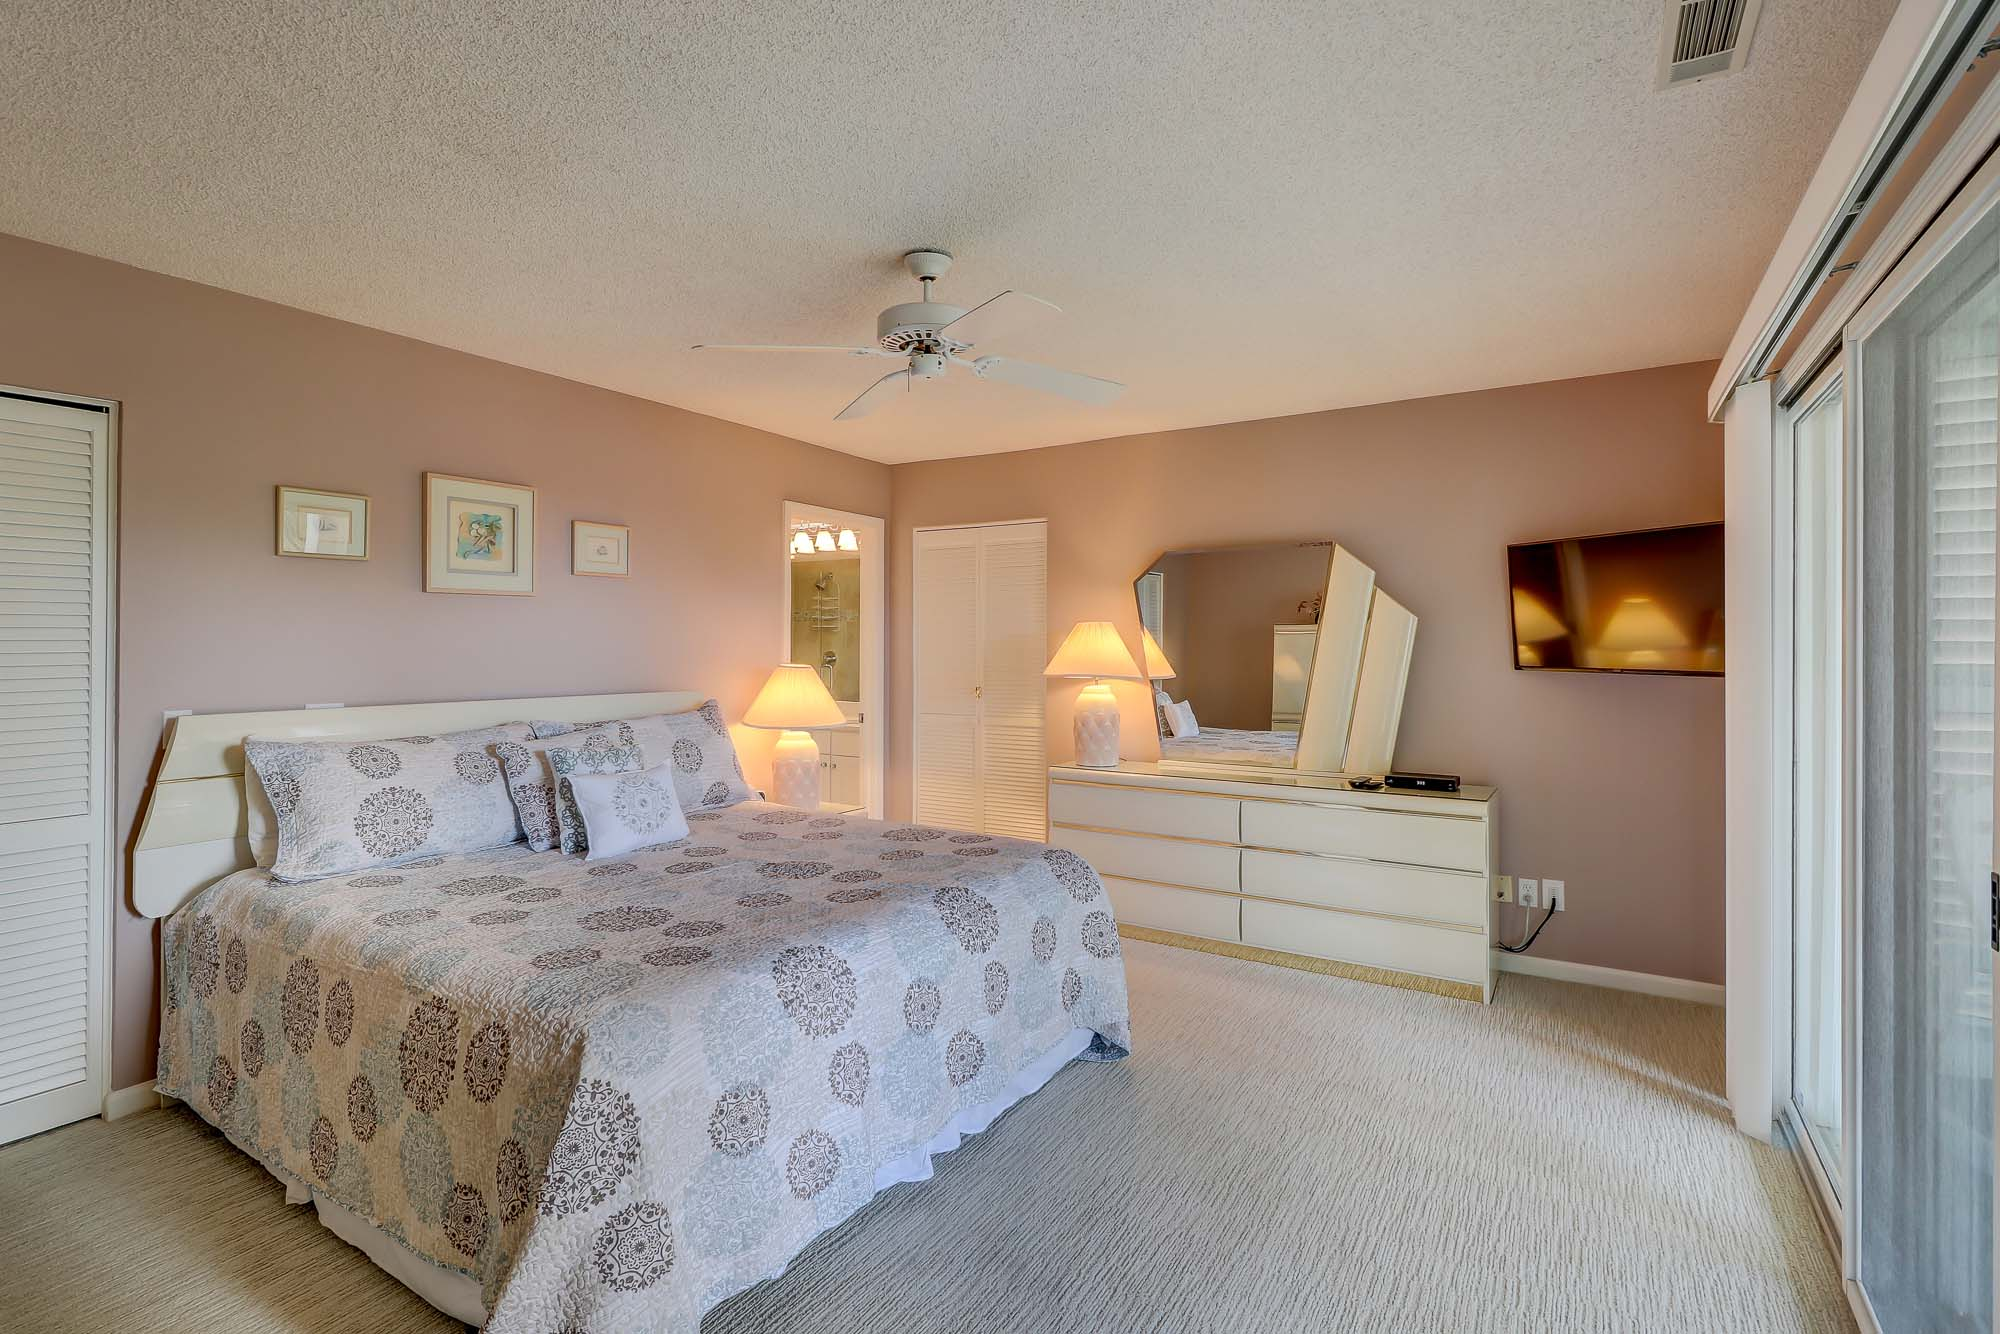 King suite (downstairs master, bedroom 1 in description) has king bed, wall-mounted flat panel TV, private en suite bath with soaking tub and walk-in shower with accupressure stone floor, and access to covered front porch